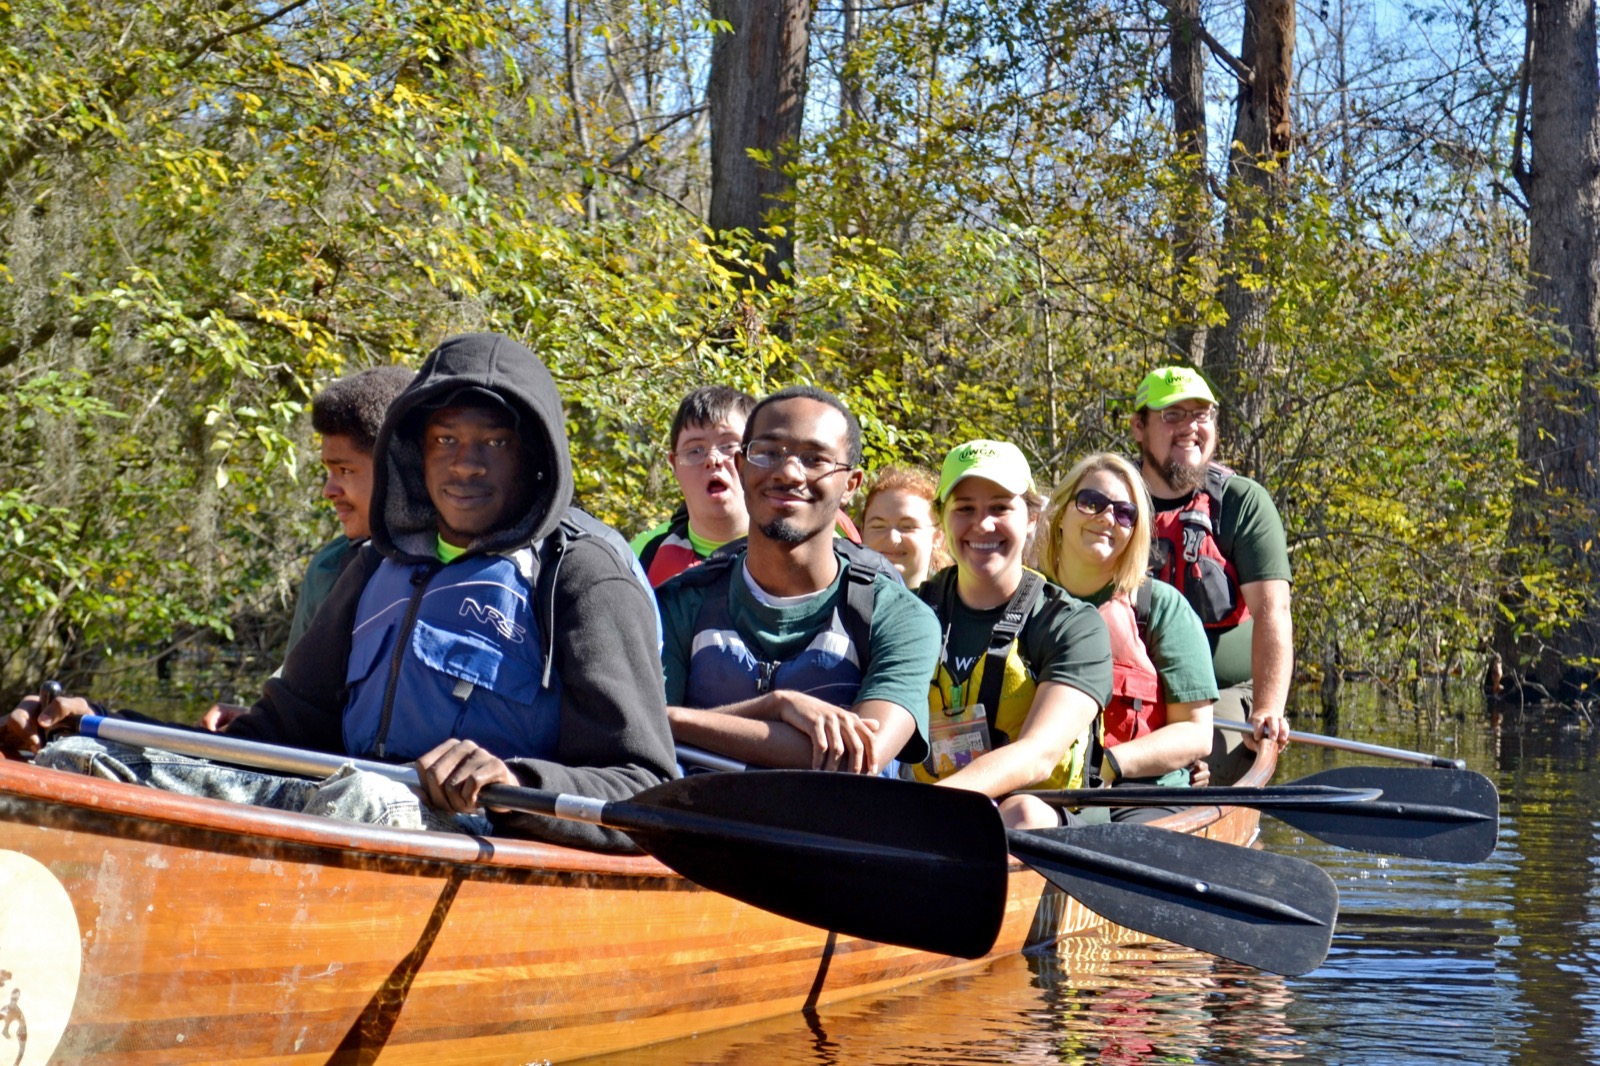 staff members and participants smile for the camera as they take a break from paddling the canoe